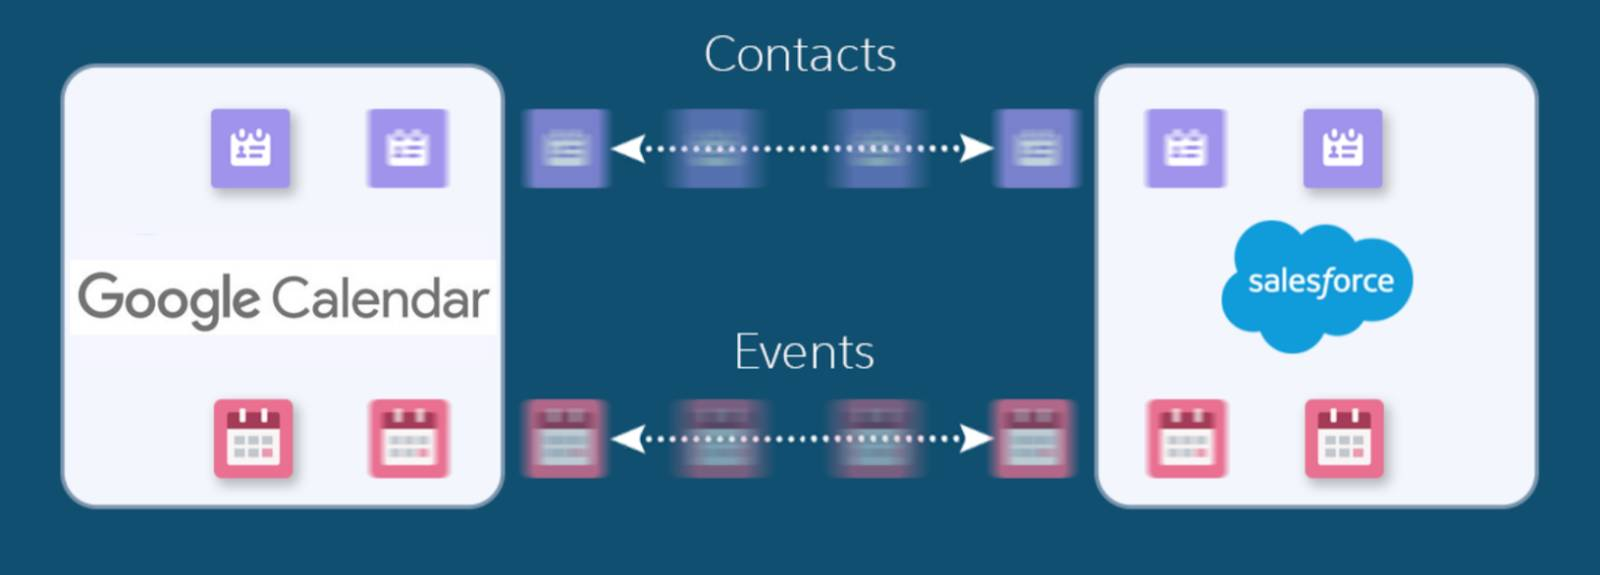 The flow of data between Calendar and Salesforce is bidirectional for both contacts and events.